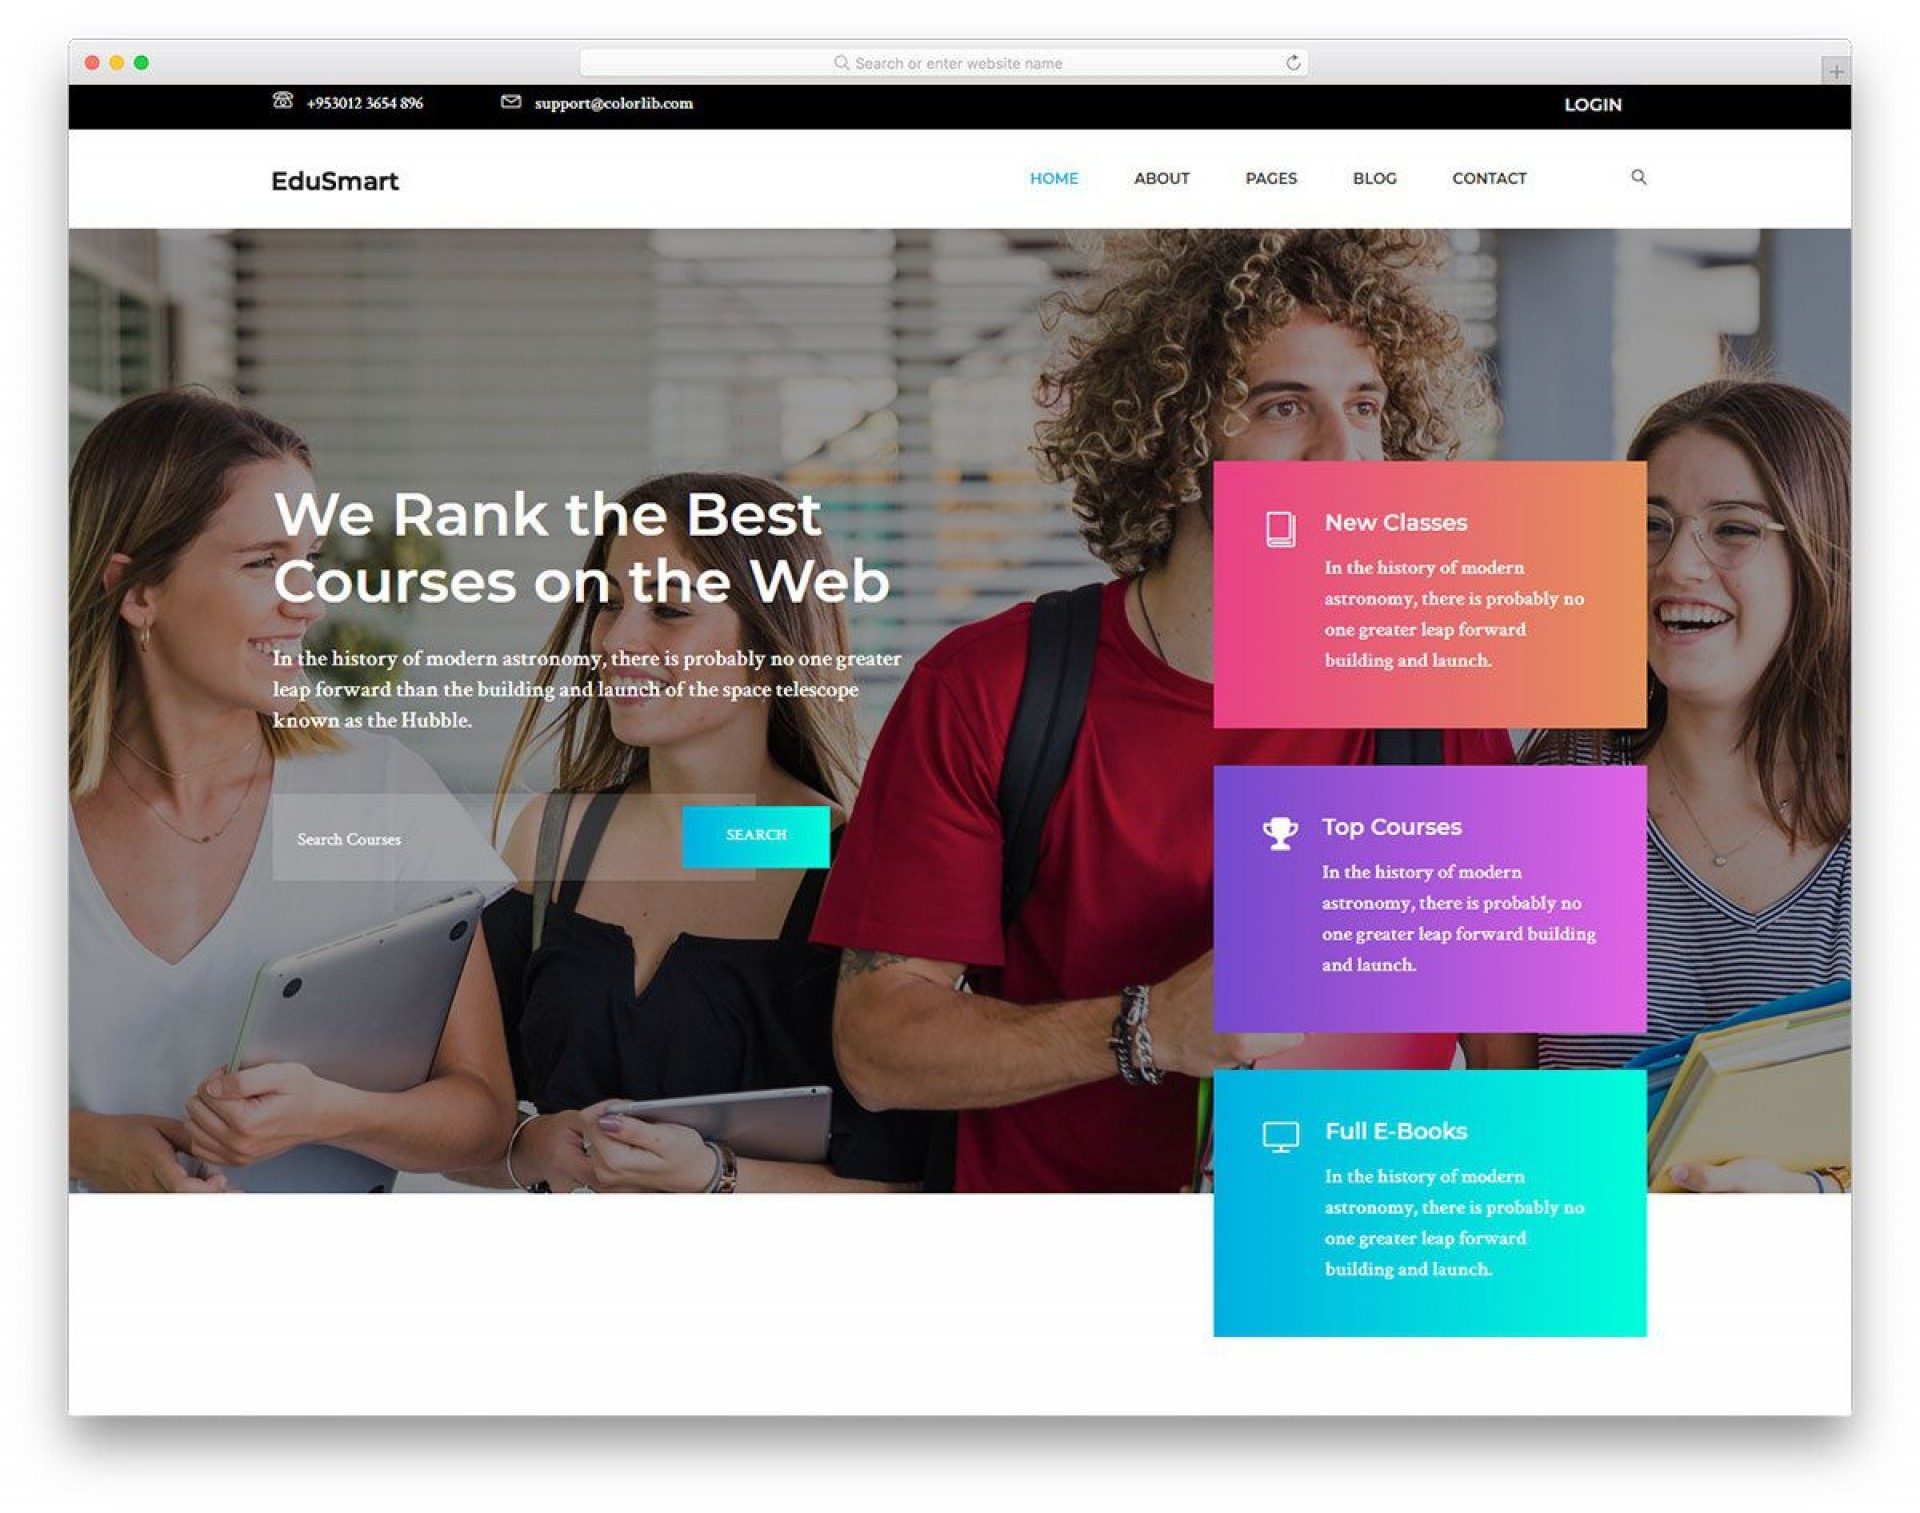 004 Unique Web Page Template Html Free Download High Resolution  One Website Cs Single1920